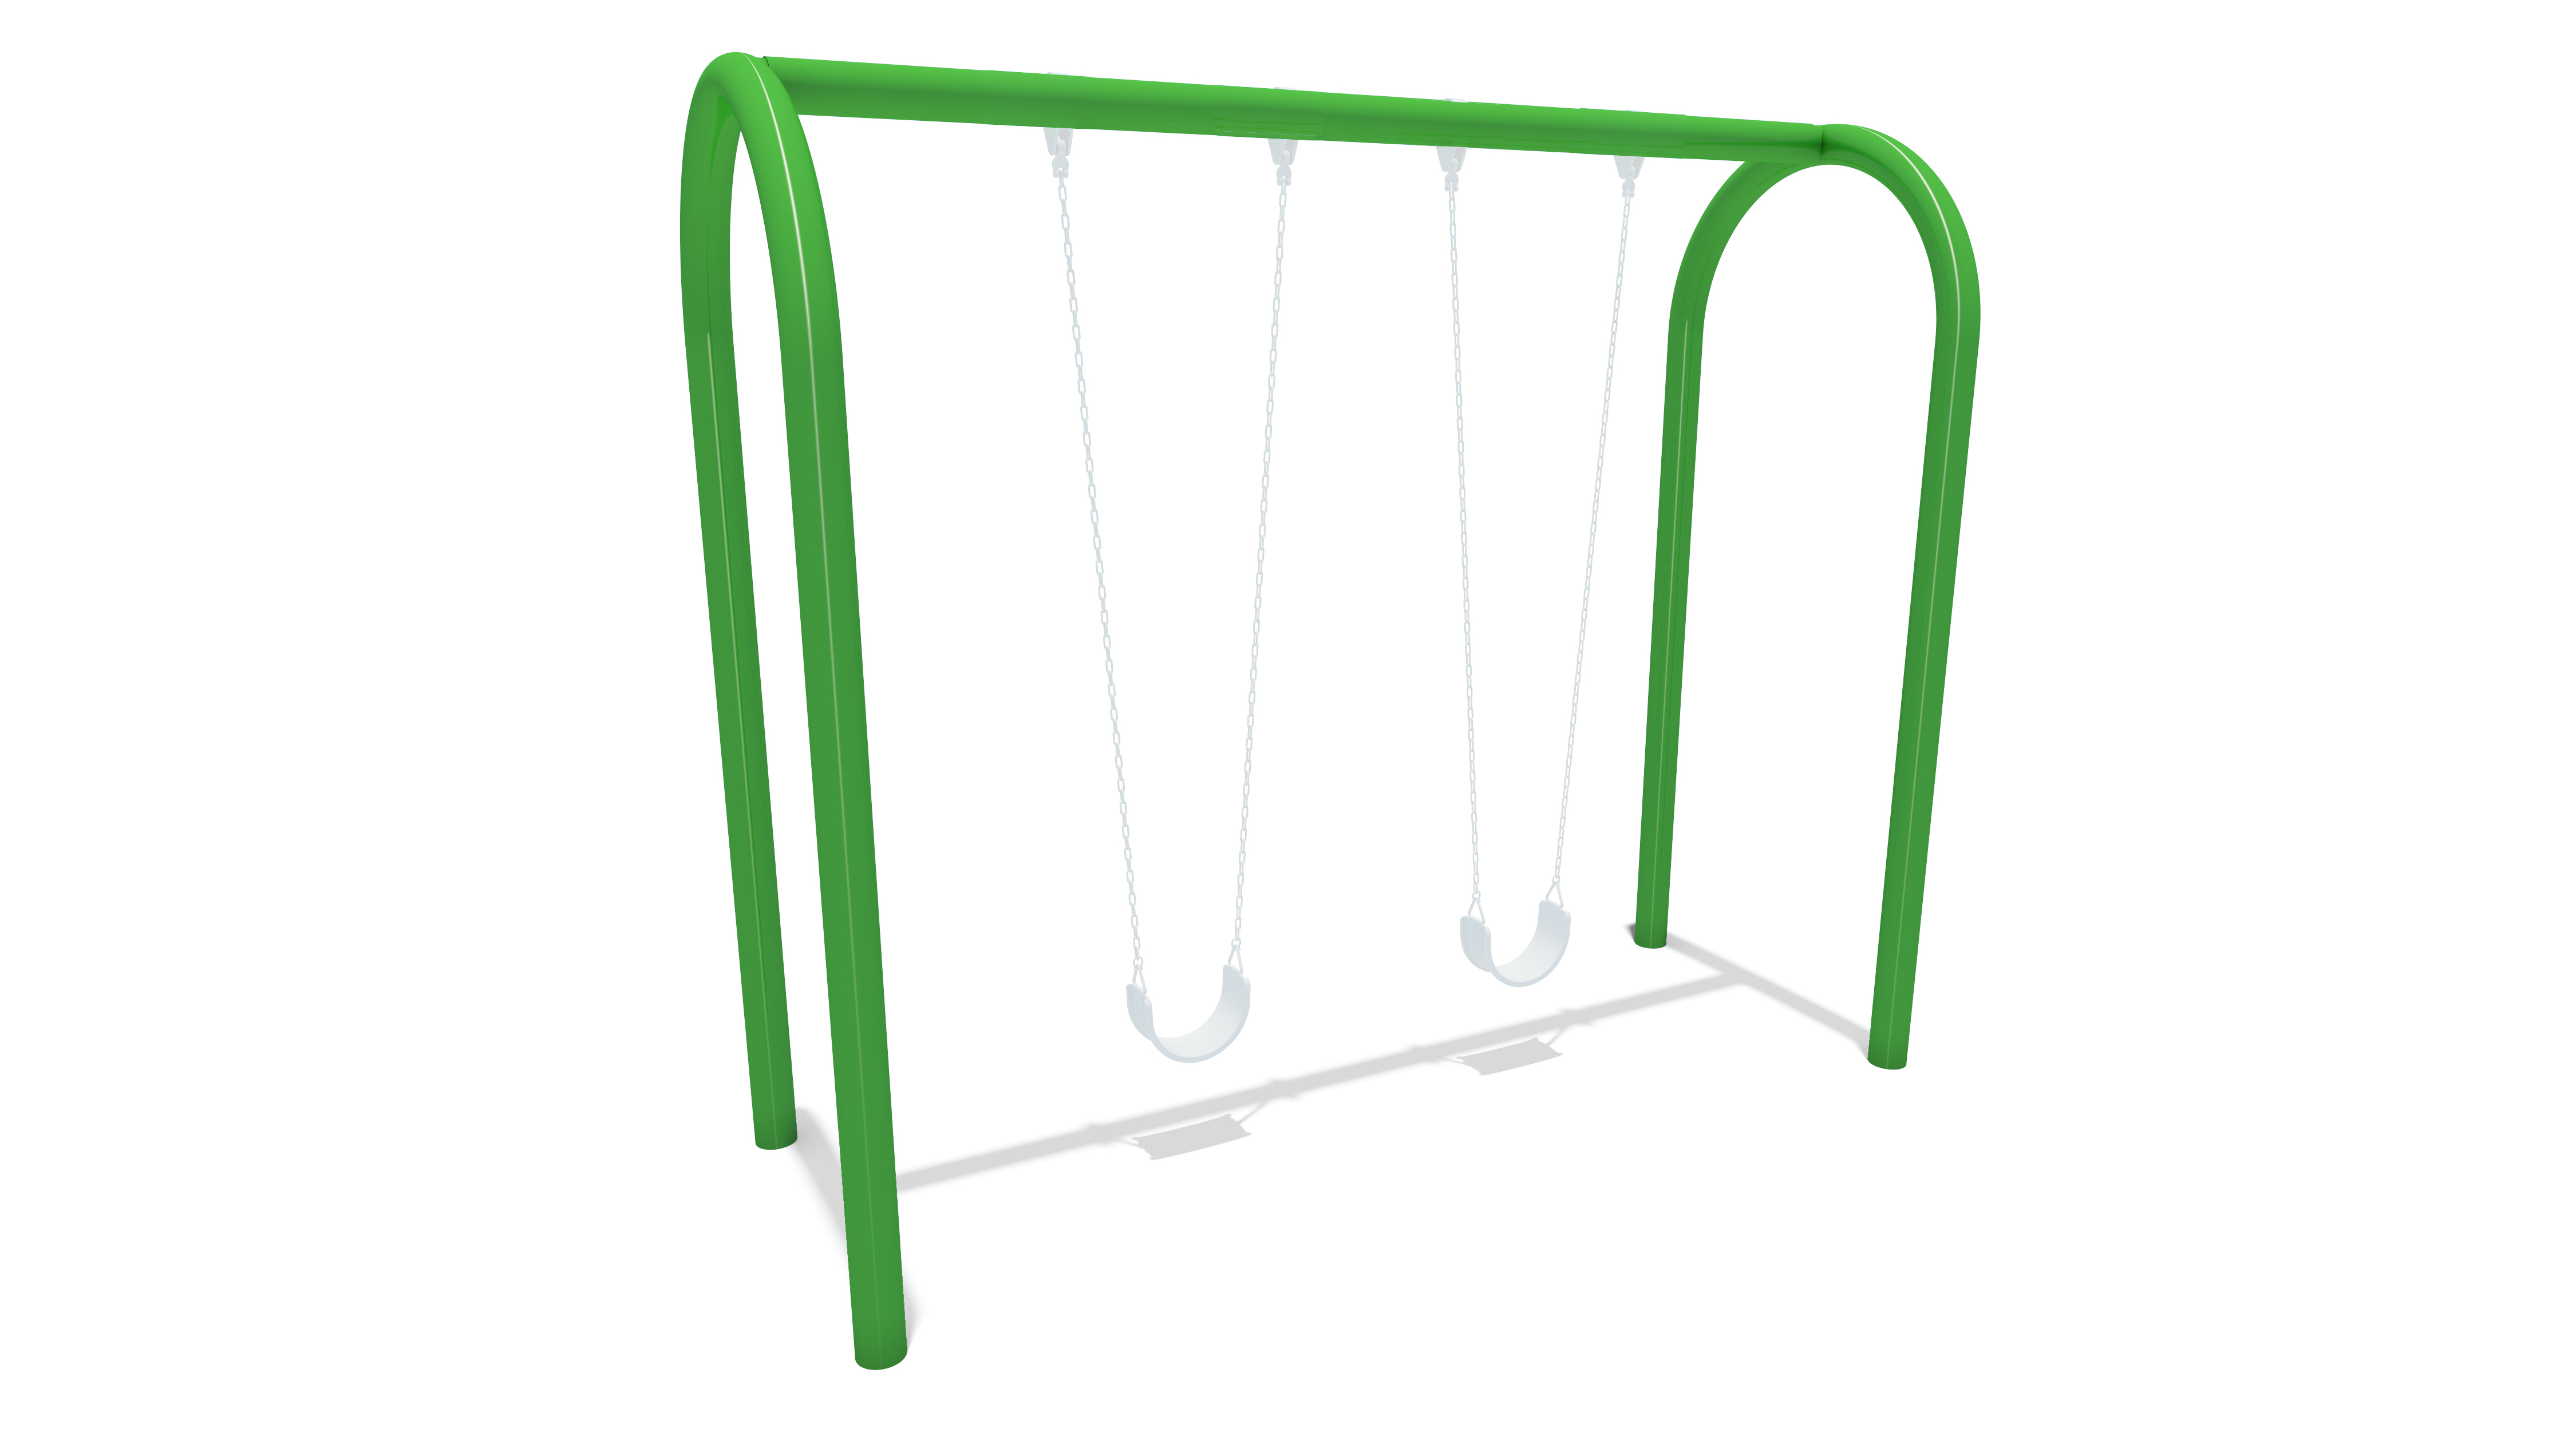 PowerScape 10' Swing